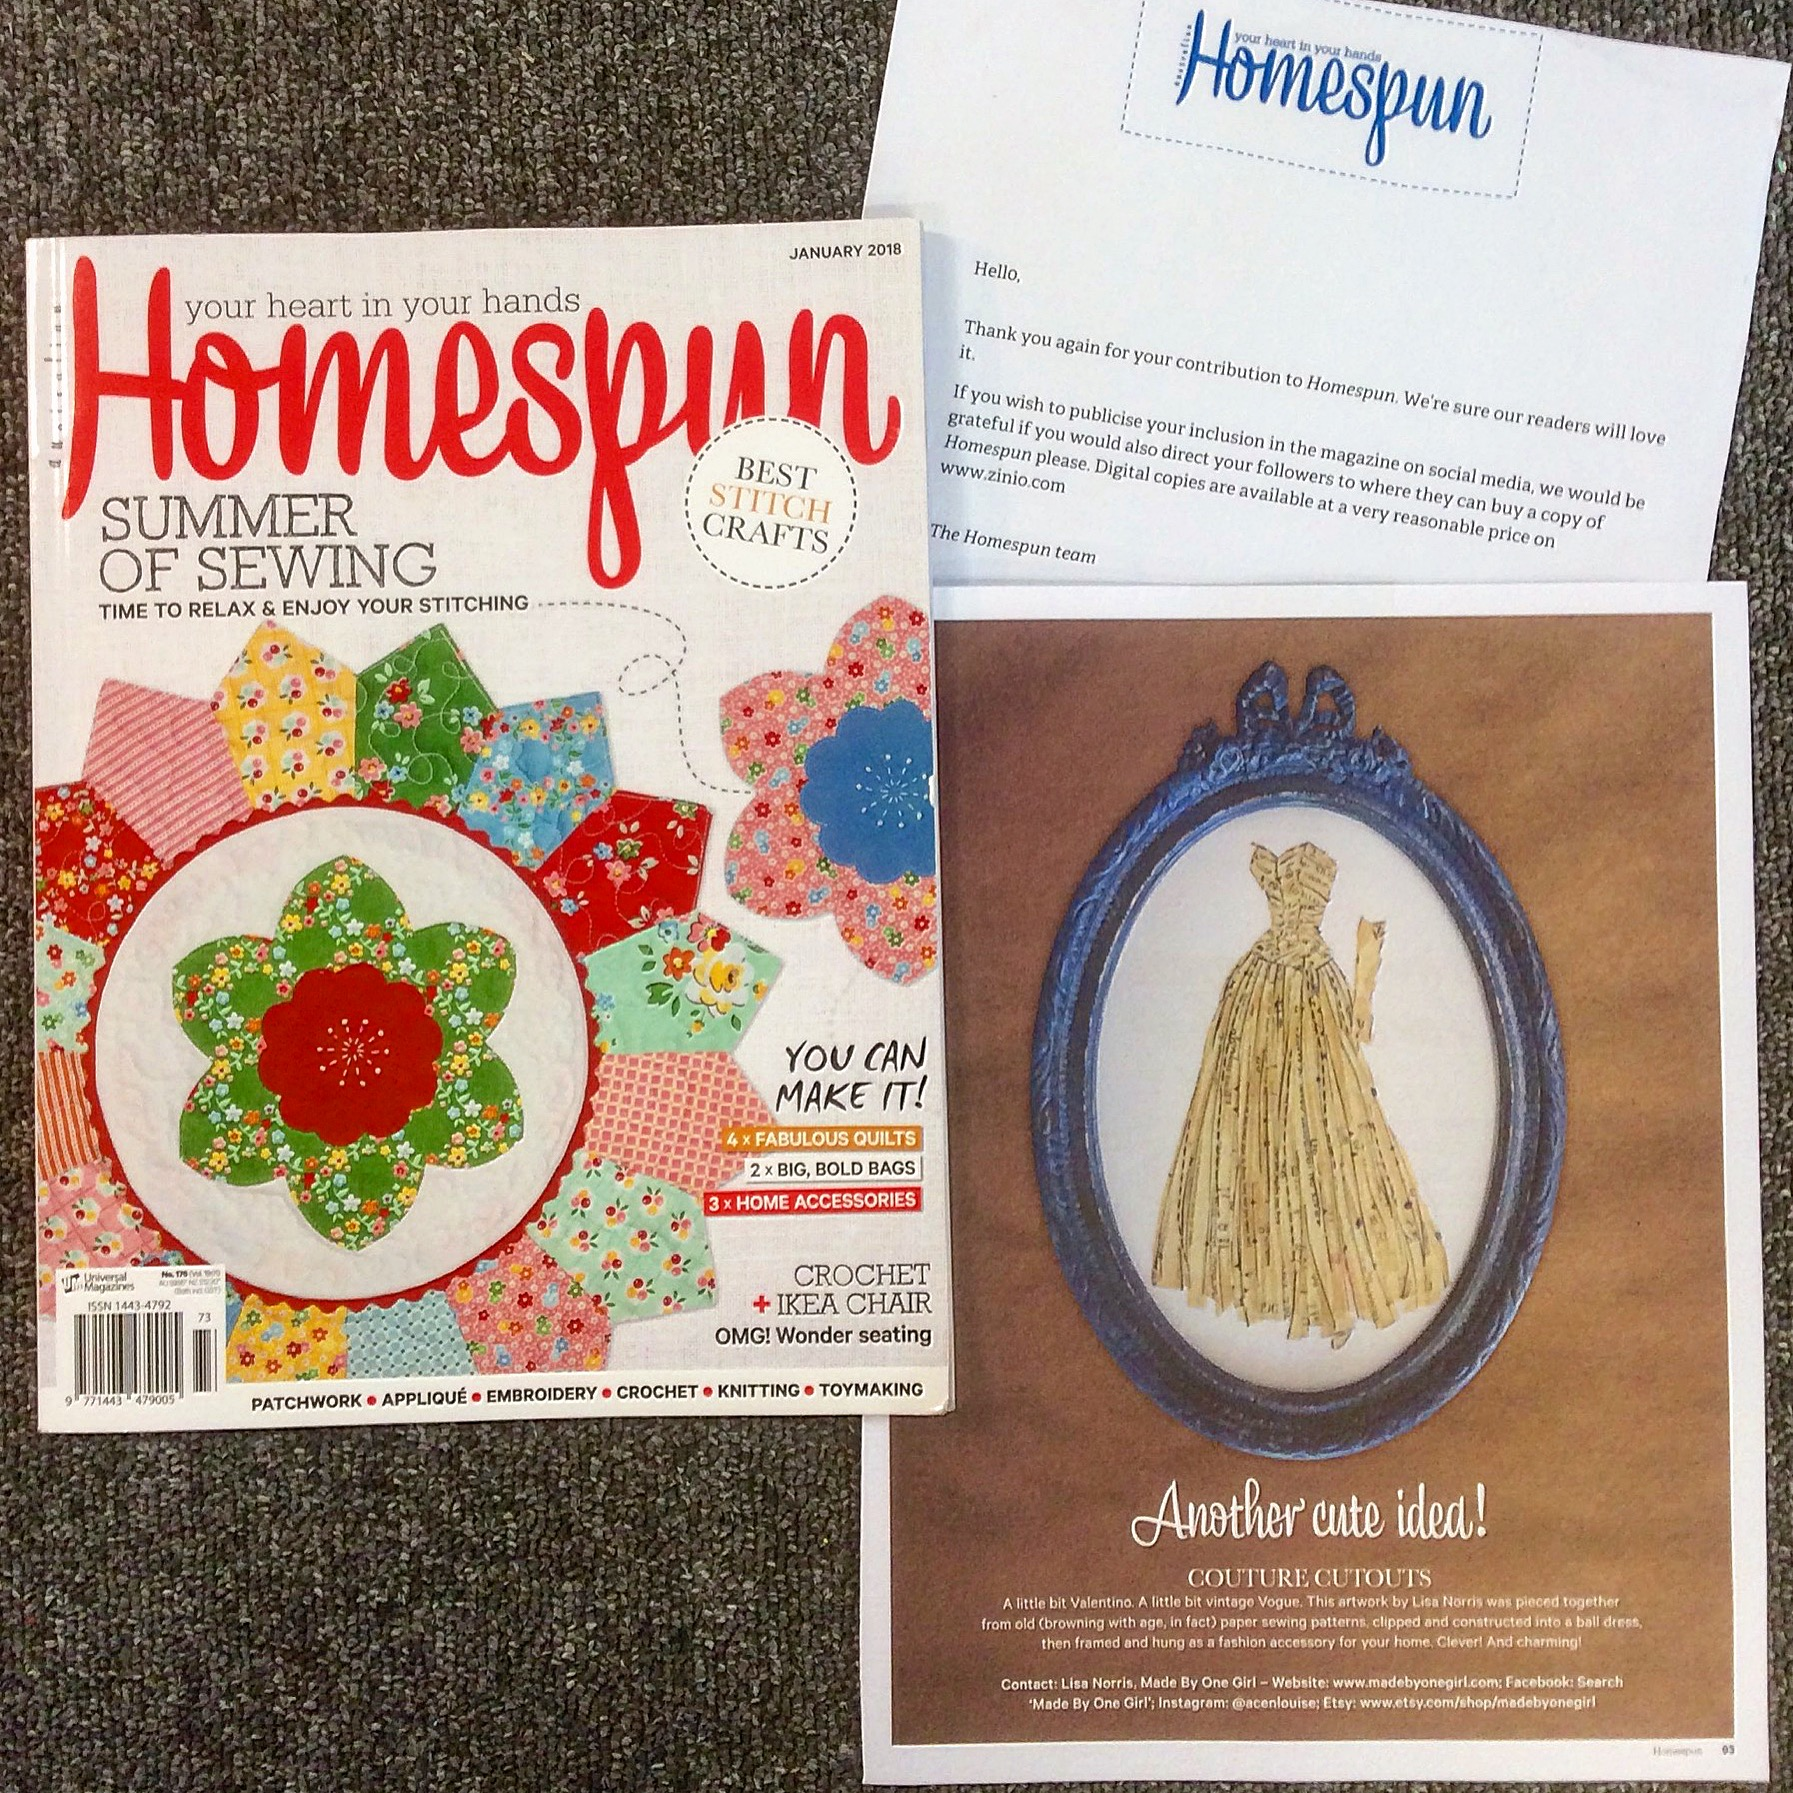 My framed collage featured in Homespun magazine